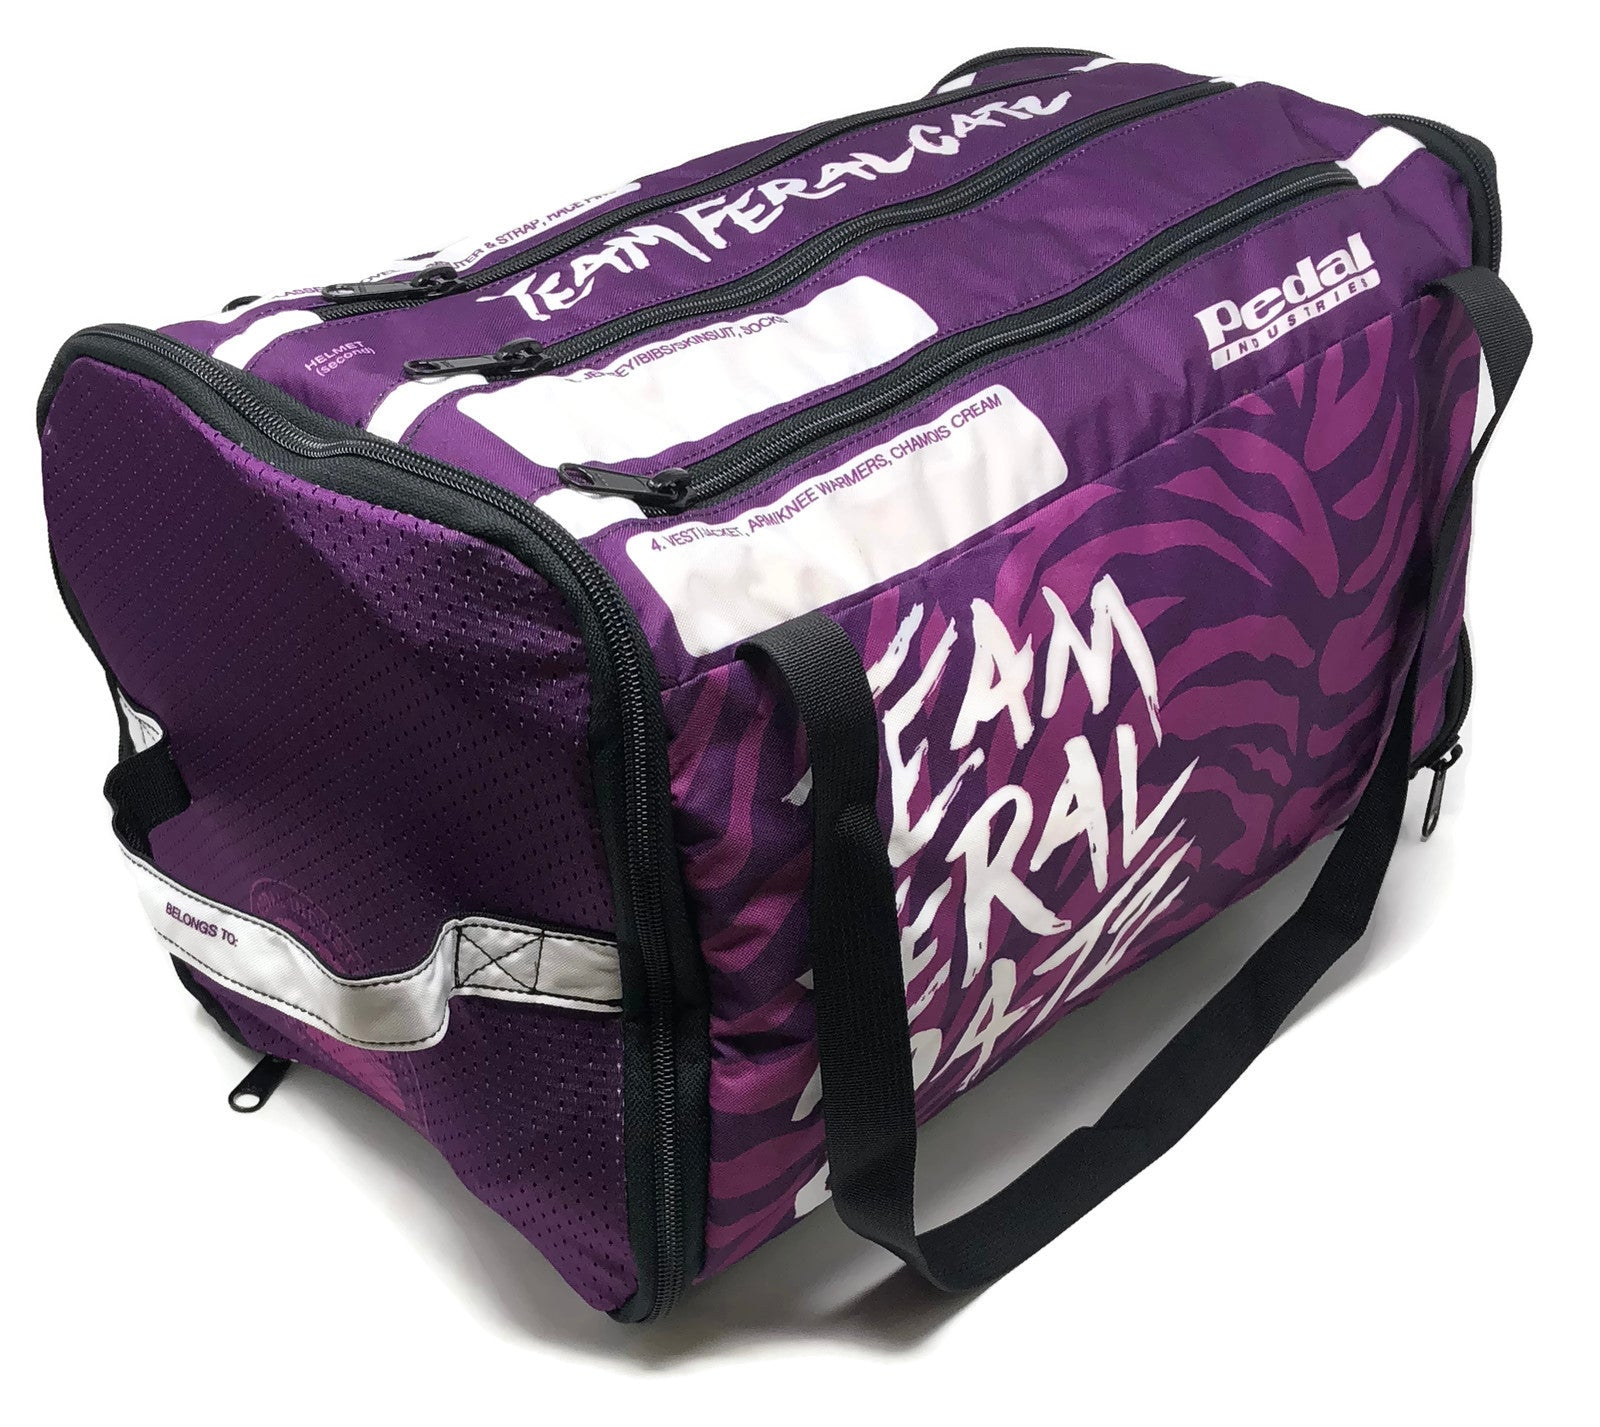 Team Feral Cats RACEDAY BAG - ships in about 3 weeks